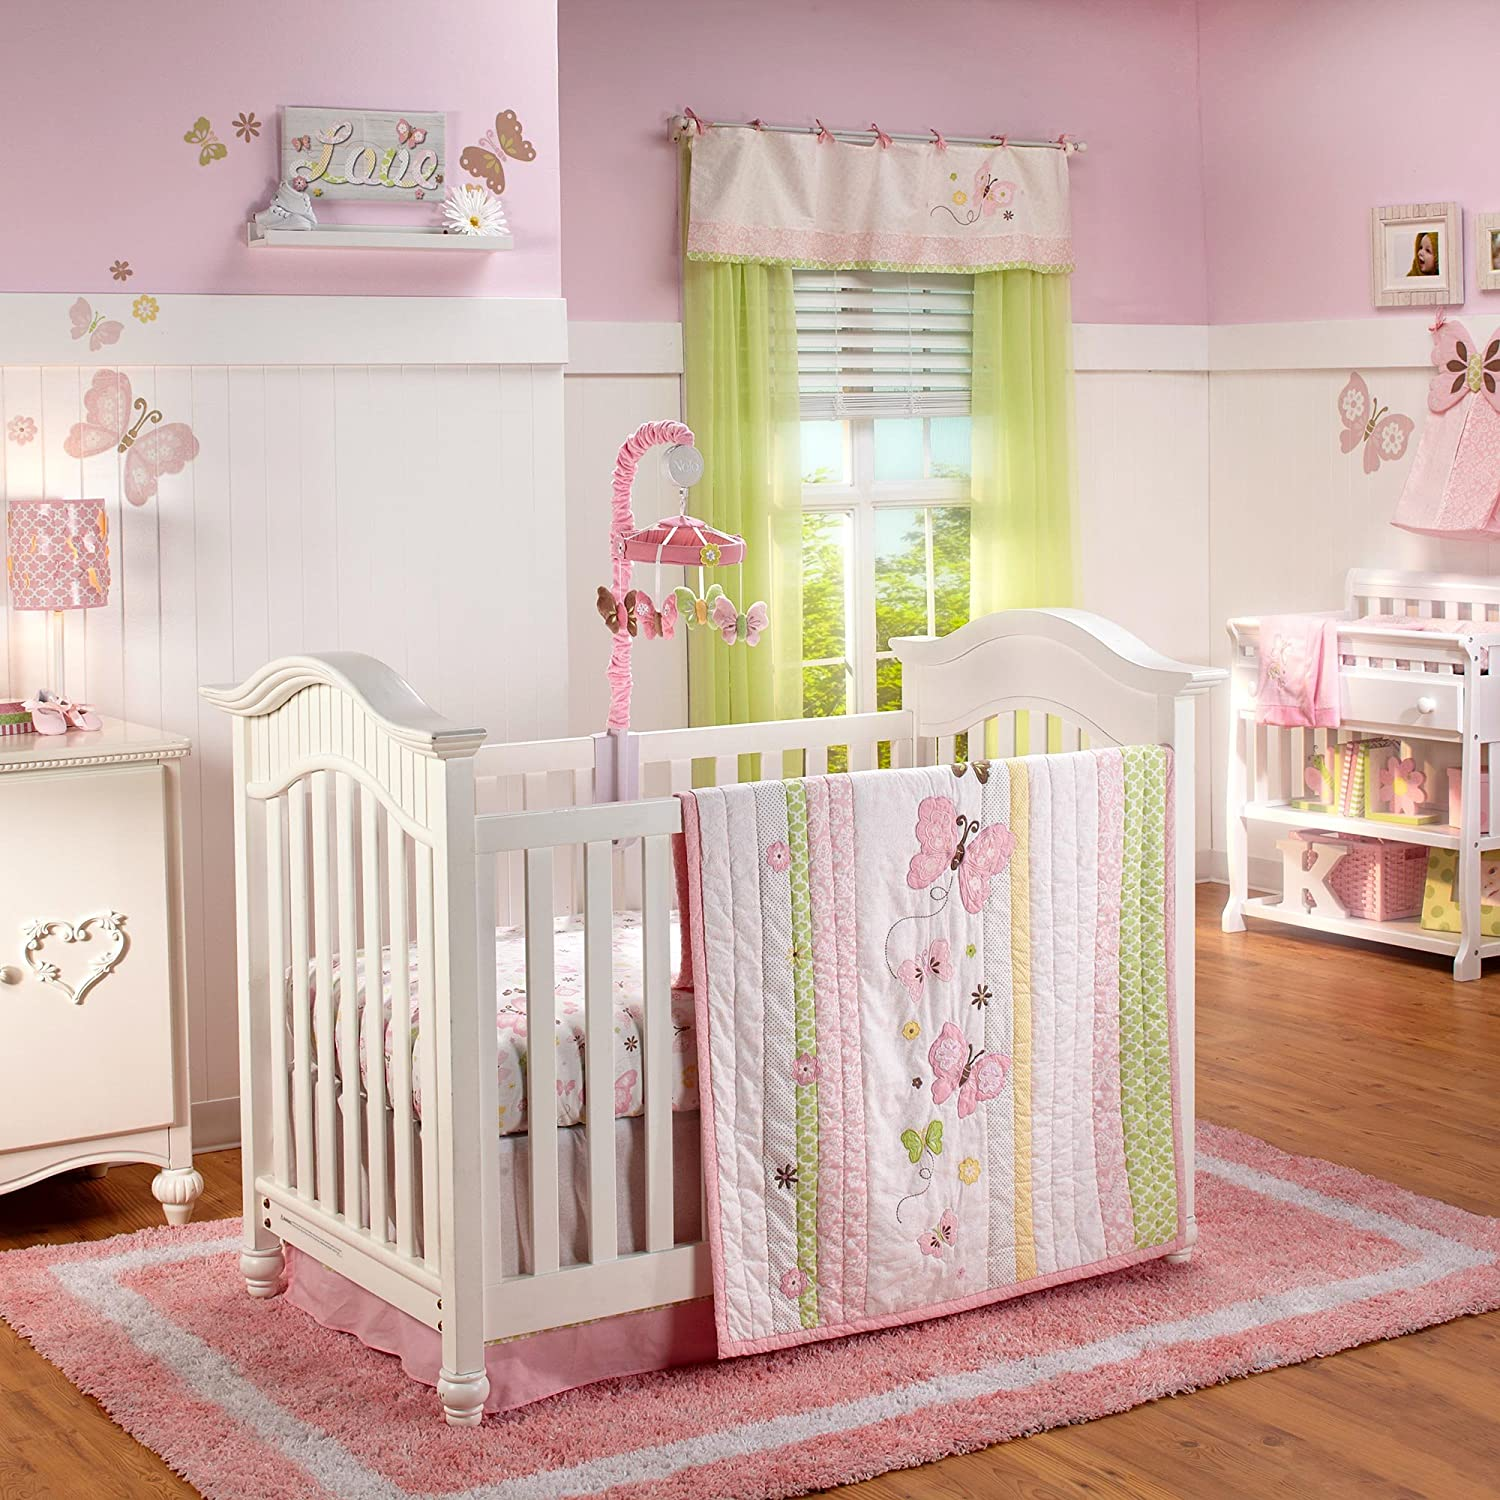 Nojo Butterfly Love baby bedding